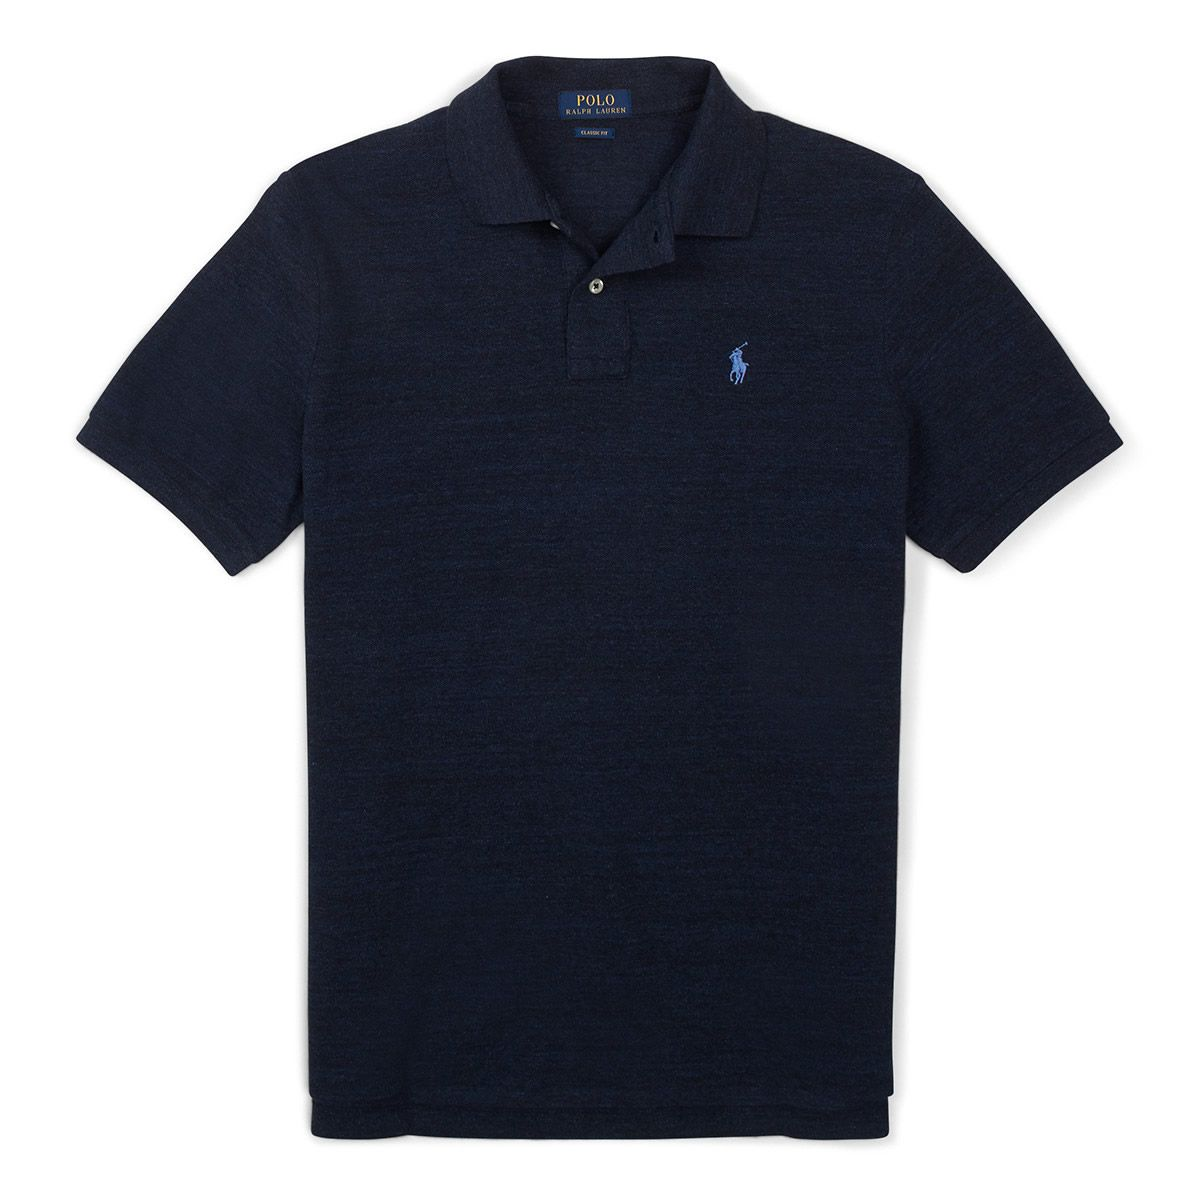 18050009b7848b Polo Ralph Lauren Mens Polo Shirts - Macy s